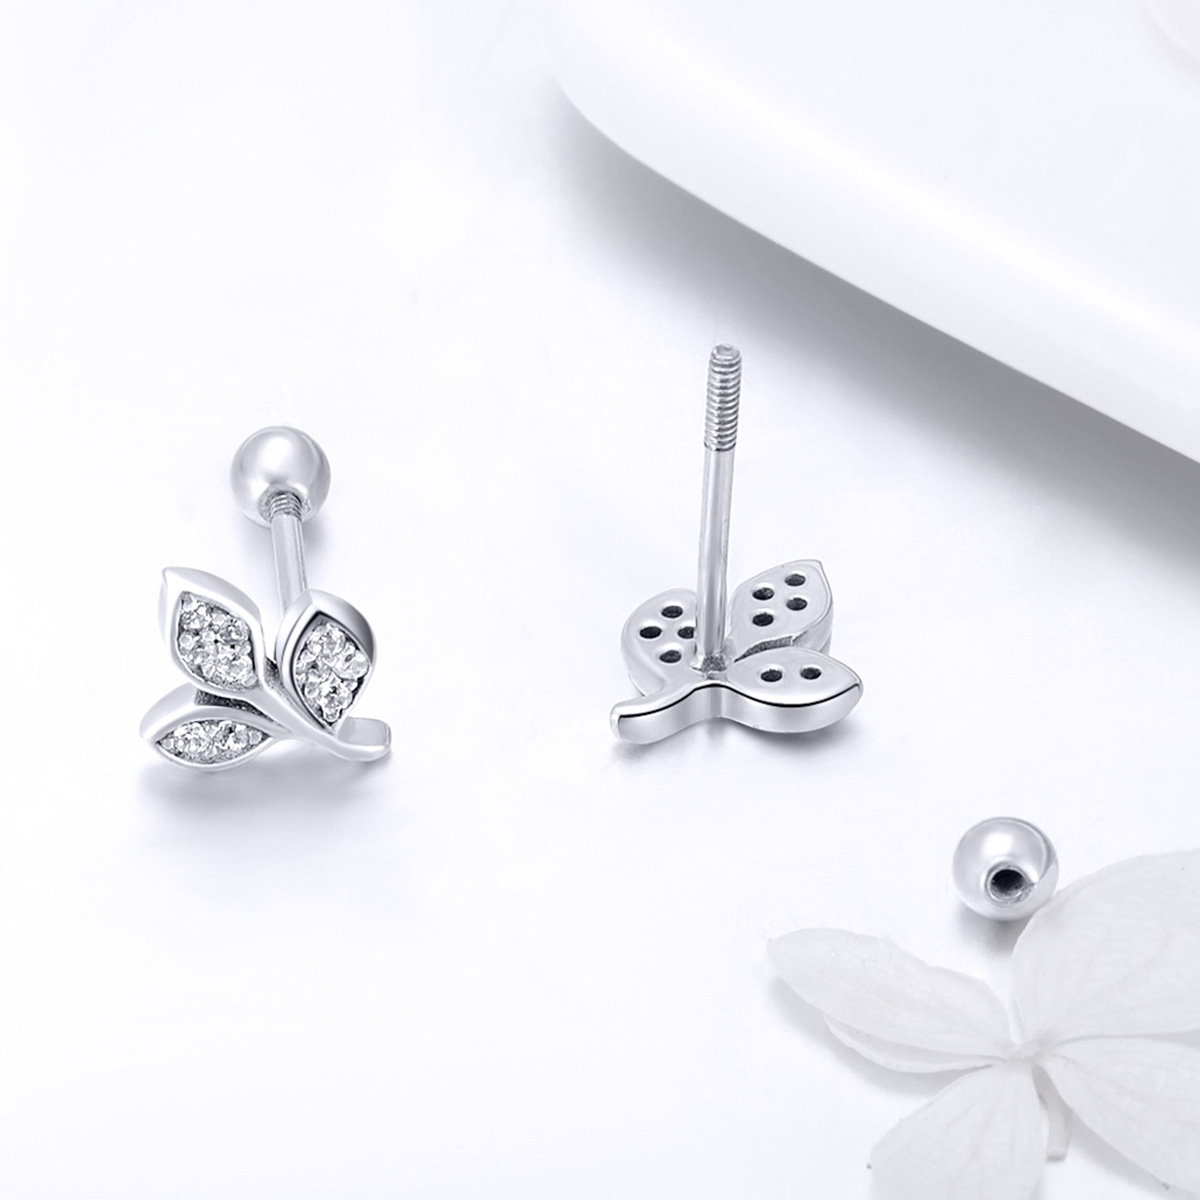 Jiayiqi 925 Sterling Silver Prevent Allergy sliver Leaf Stud Earrings charm for Women Bridal Wedding Earrings Jewelry in Stud Earrings from Jewelry Accessories